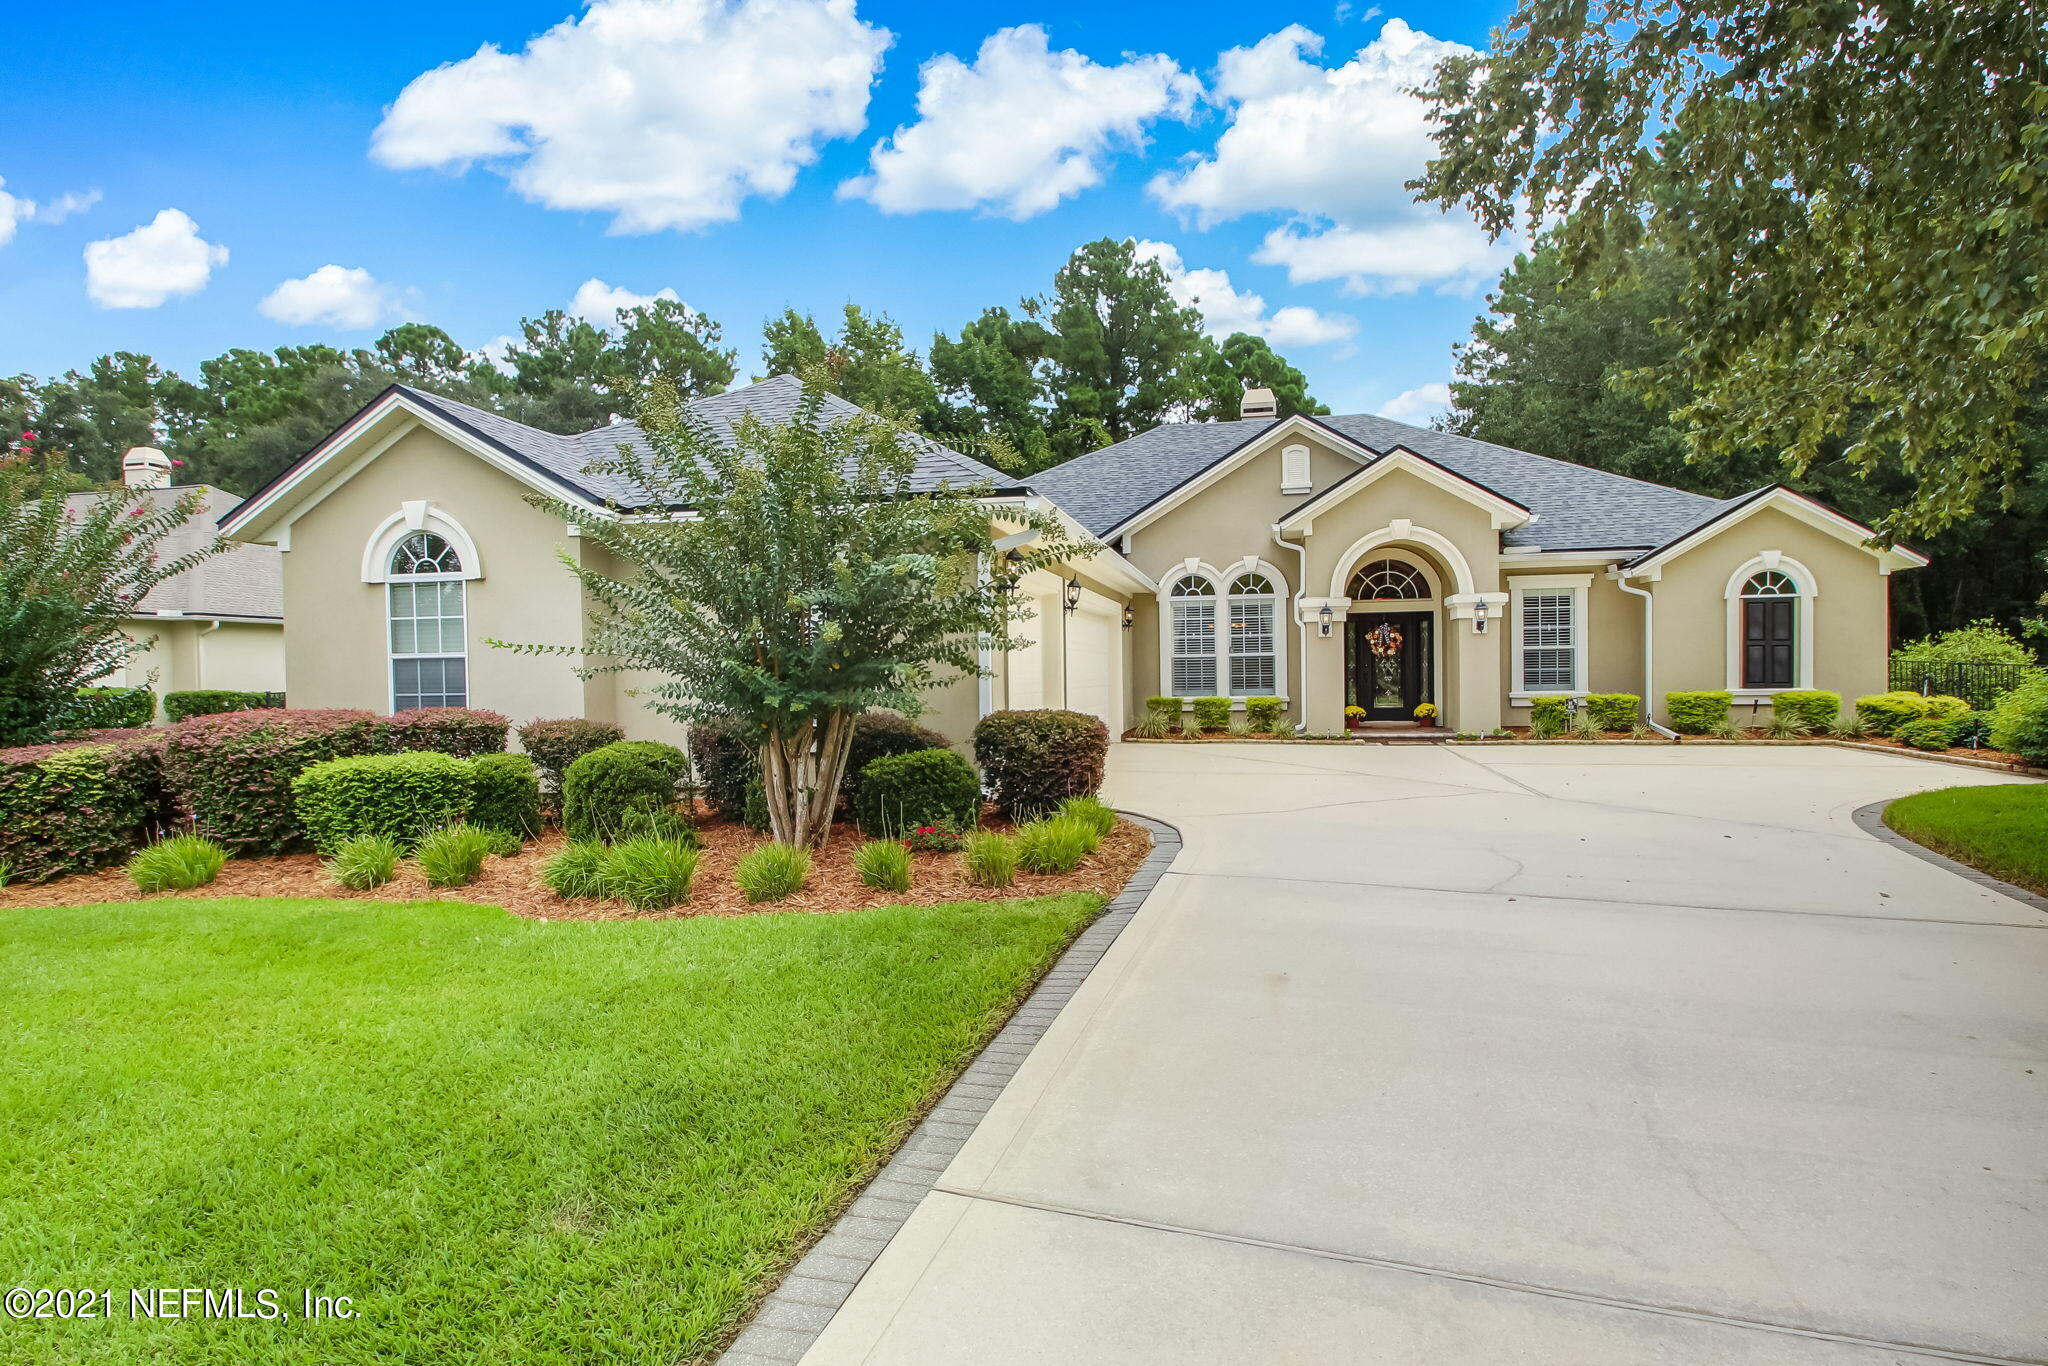 2922 COUNTRY CLUB, ORANGE PARK, FLORIDA 32073, 4 Bedrooms Bedrooms, ,3 BathroomsBathrooms,Residential,For sale,COUNTRY CLUB,1131172